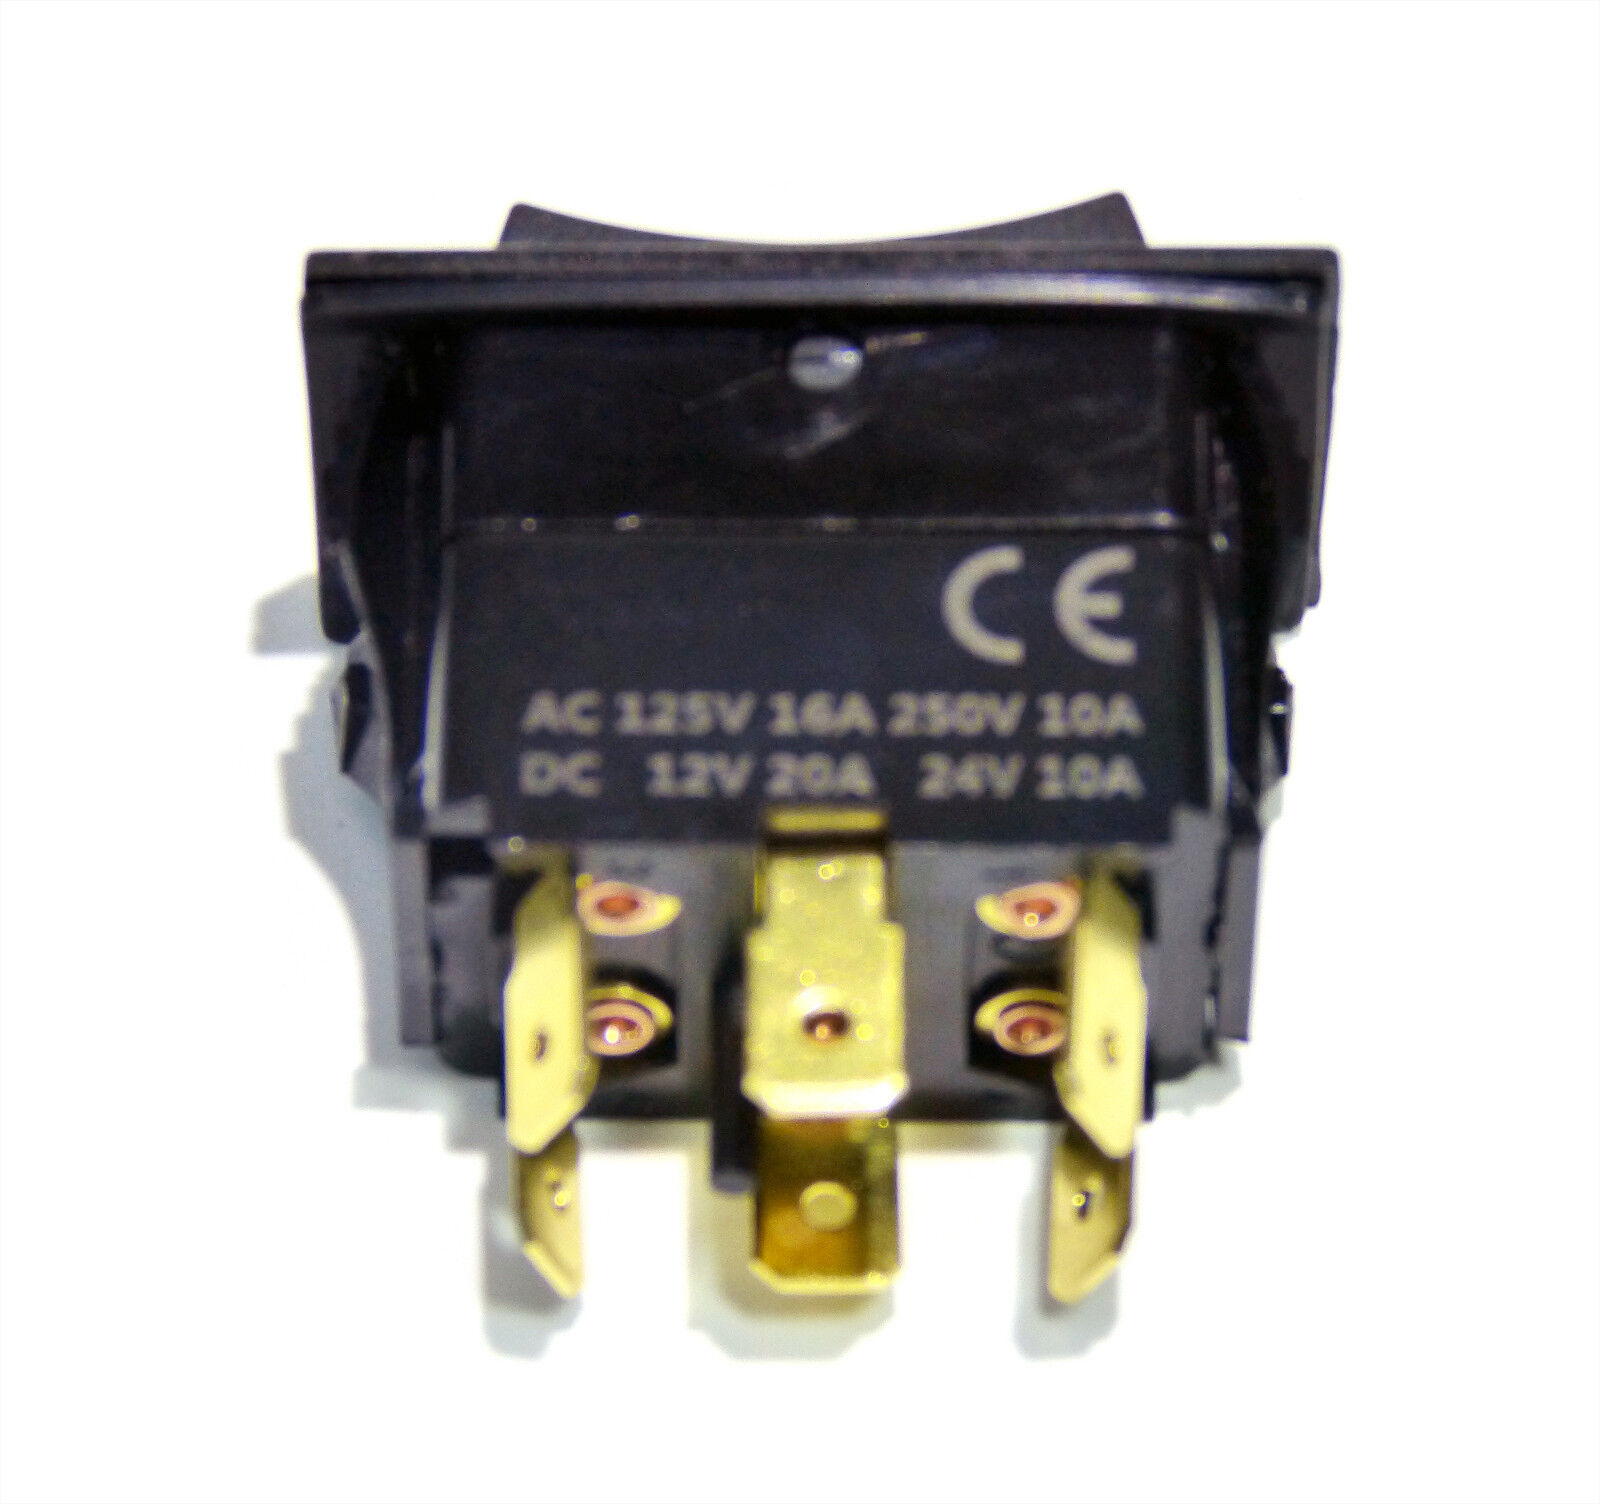 ROCKER SWITCH - ON OFF ON - MOMENTARY SNAP IN - DPDT 20A Up to 30A ...